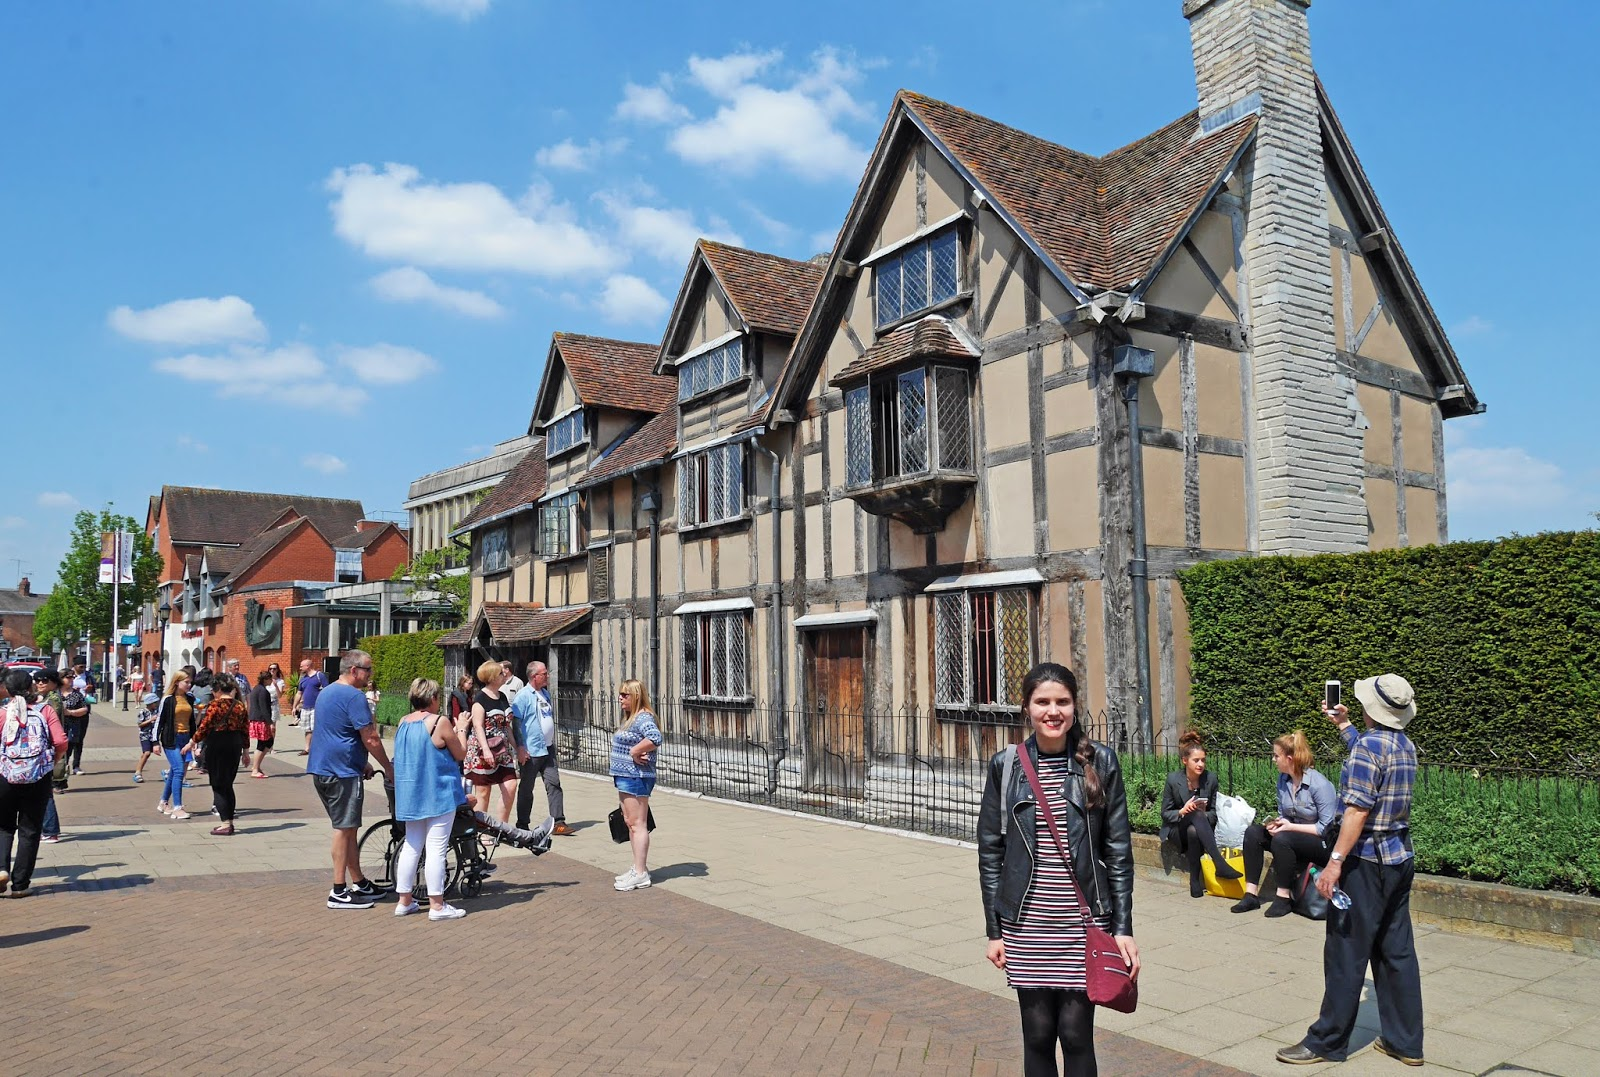 Shakespeare's Birthplace Trust, Stratford-upon-Avon